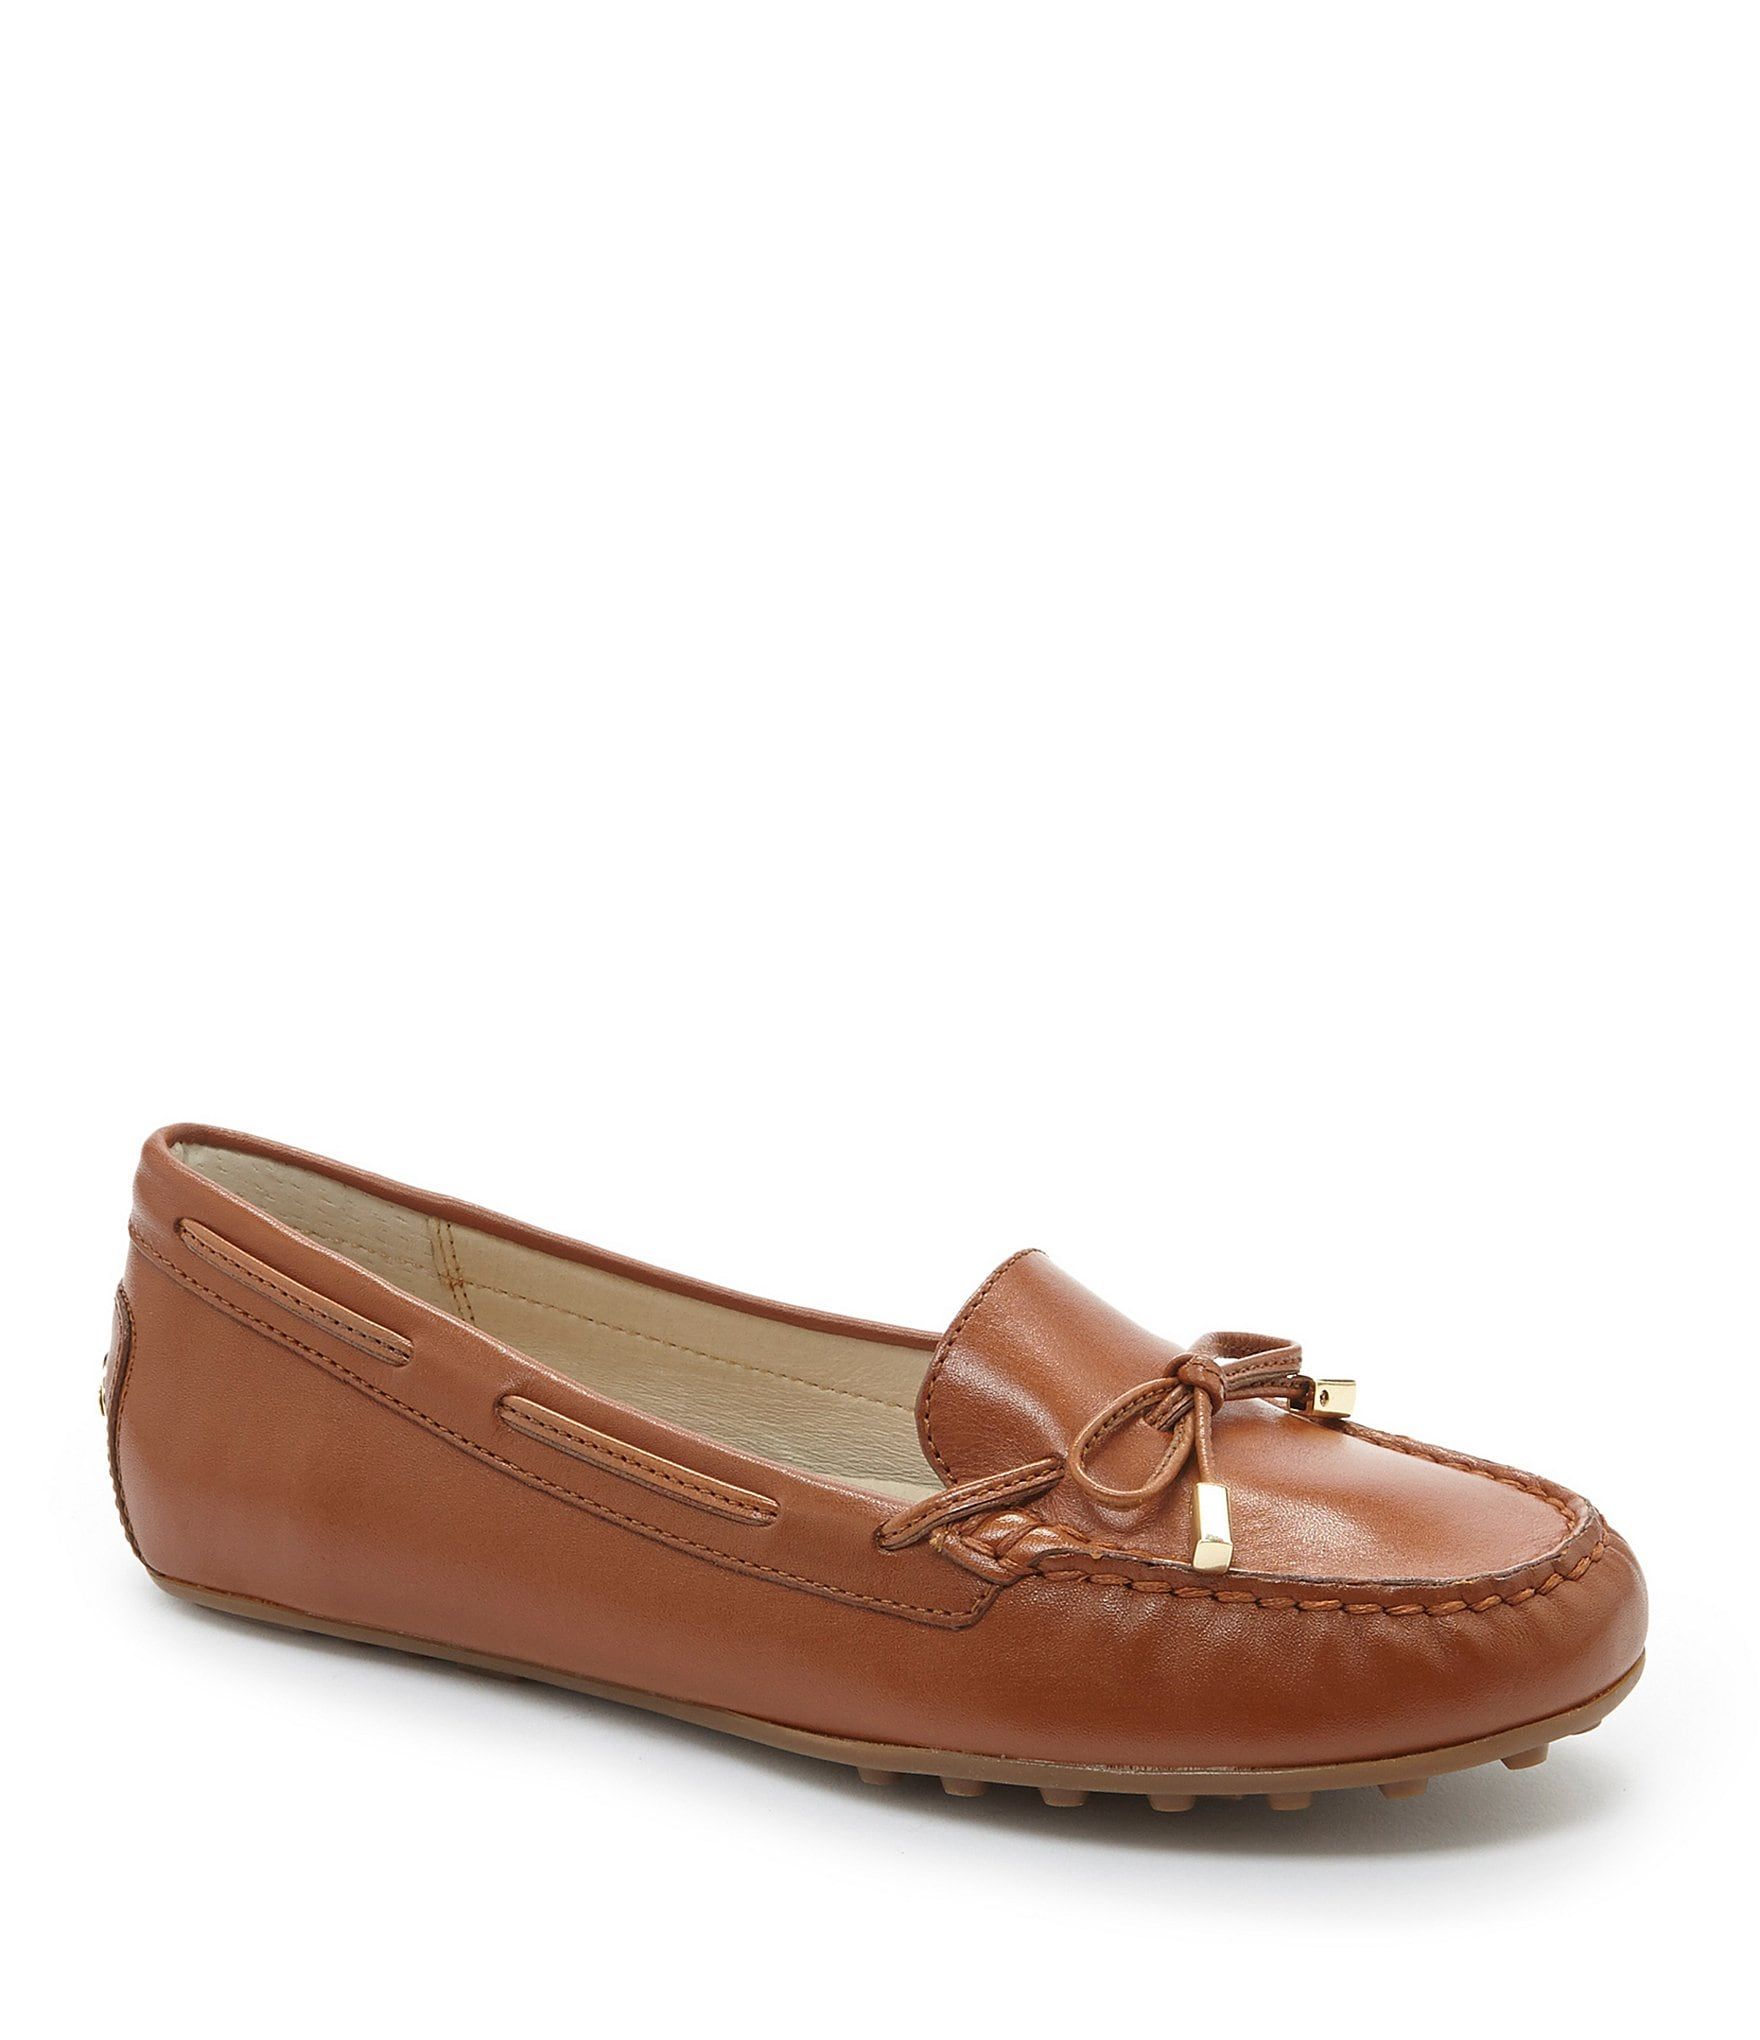 Coach Slip On Shoes Womens